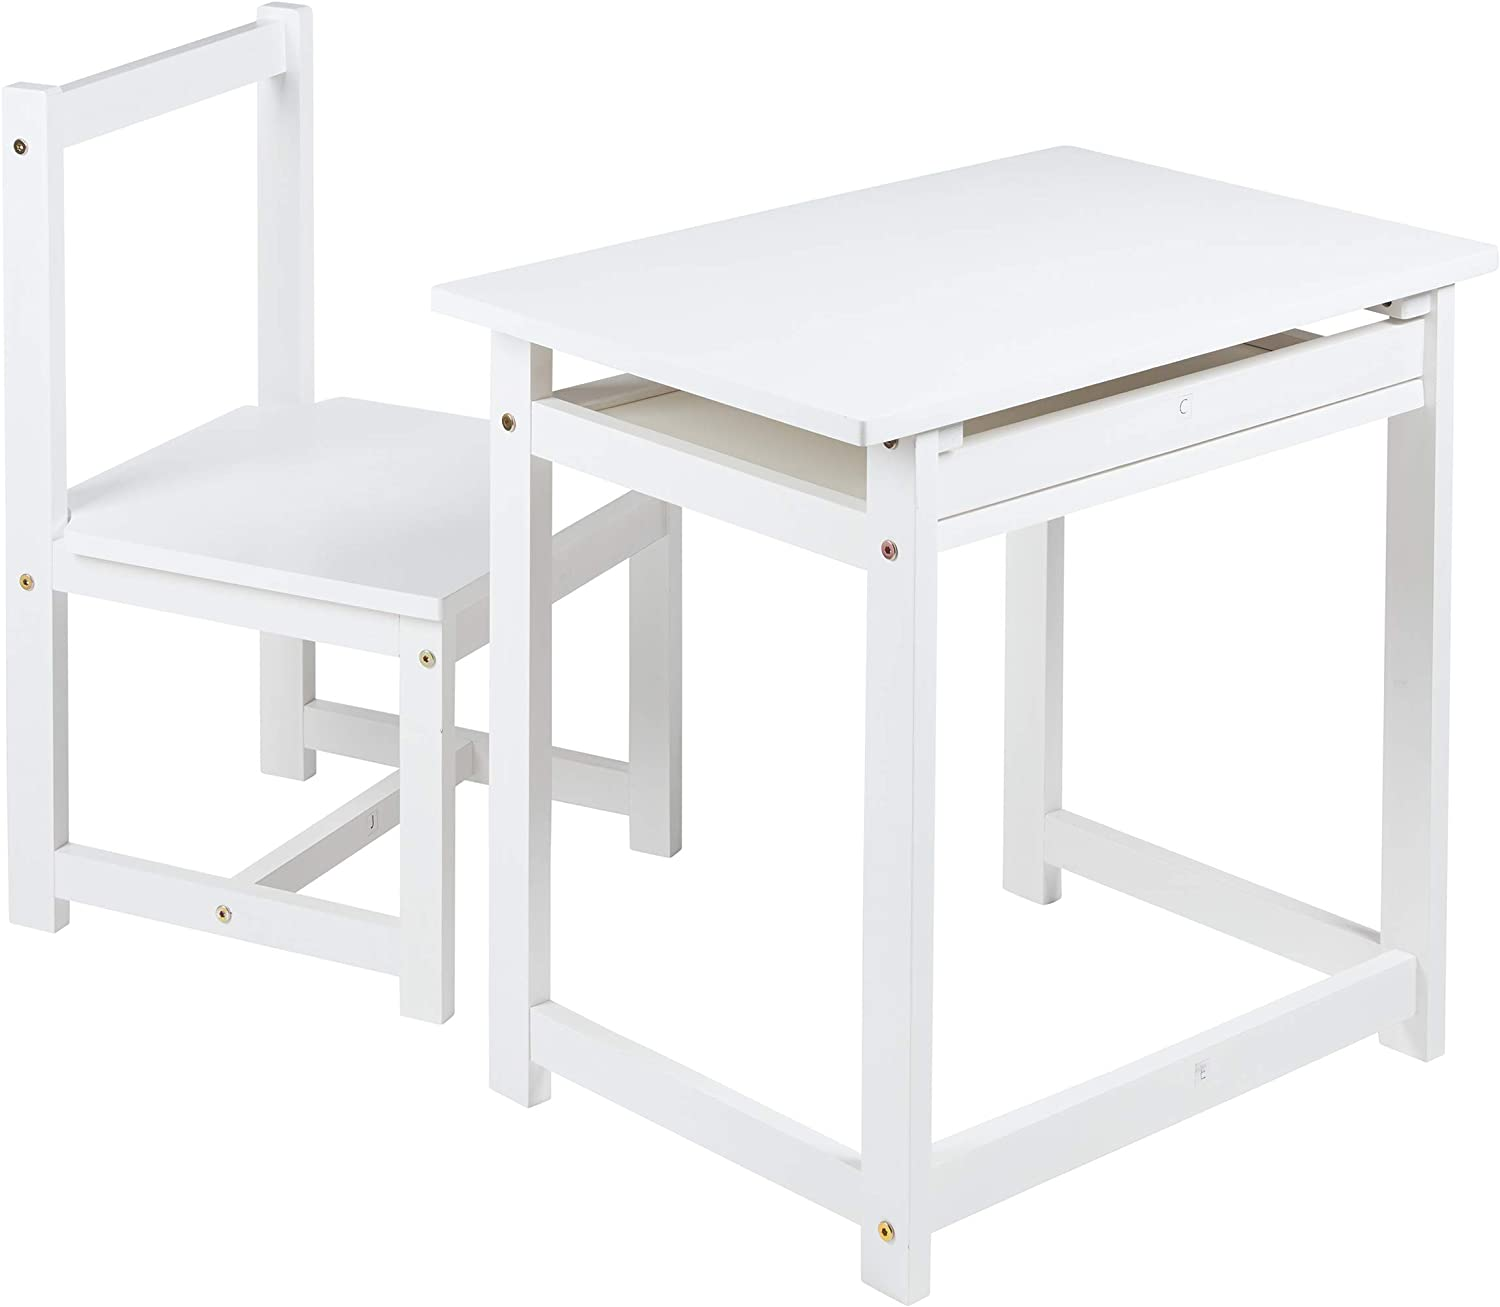 Amazon Com Amazon Basics Solid Wood Kid Desk And Chair White Furniture Decor